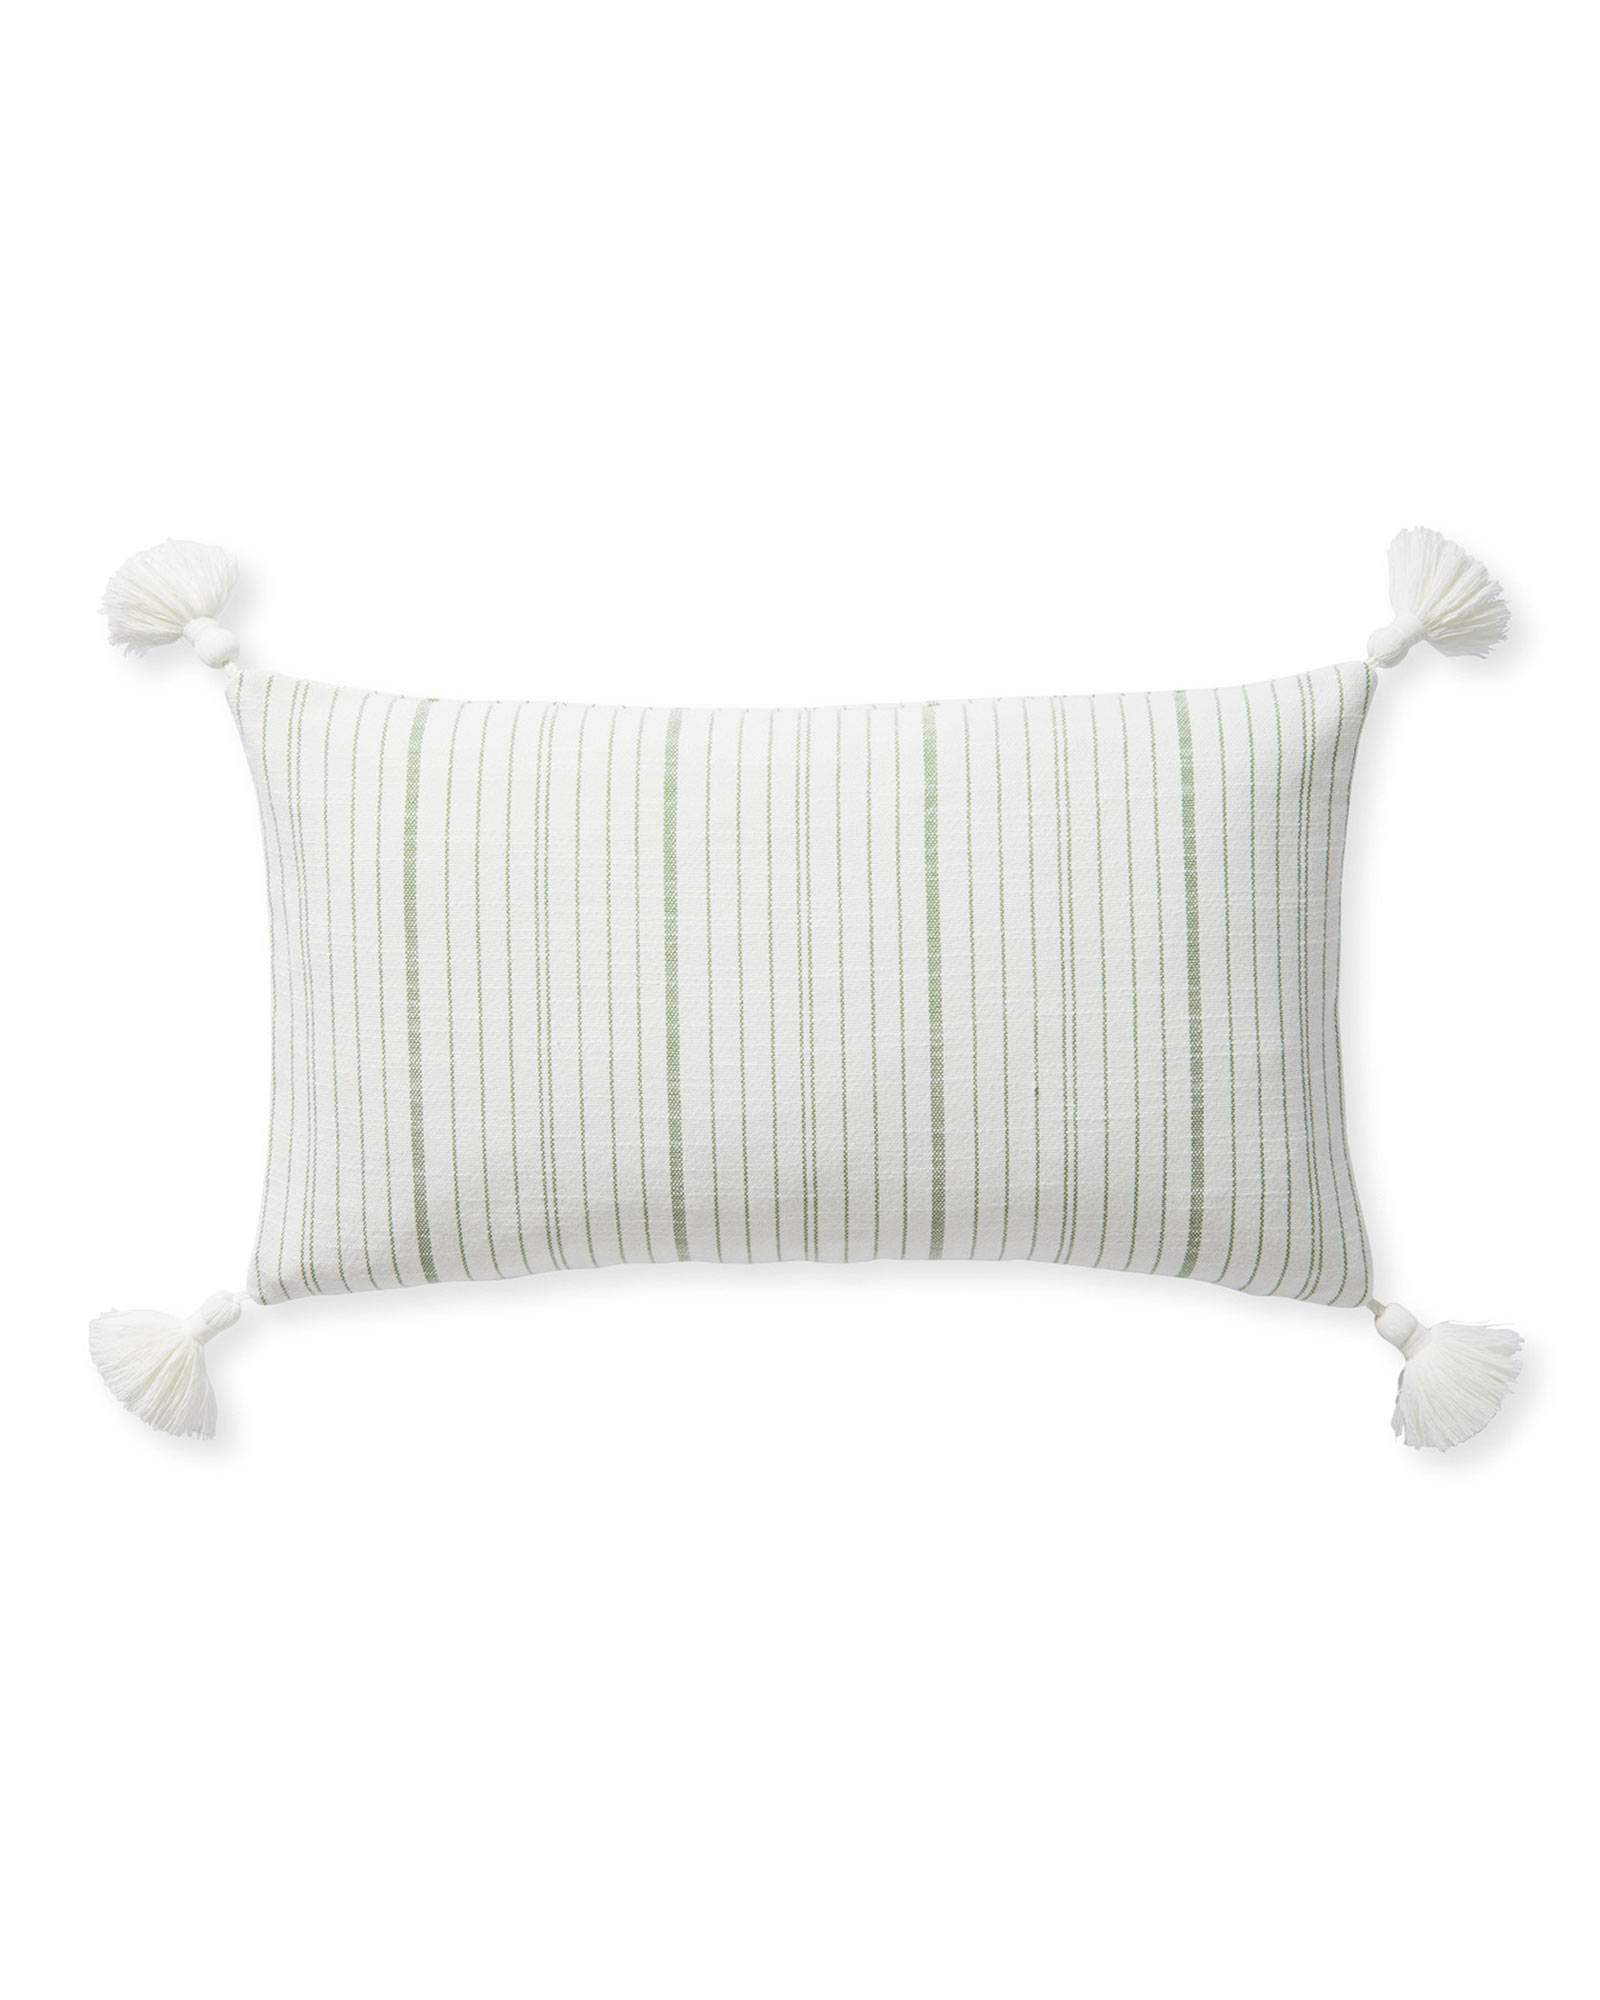 Surf Stripe Pillow Cover, Moss Green